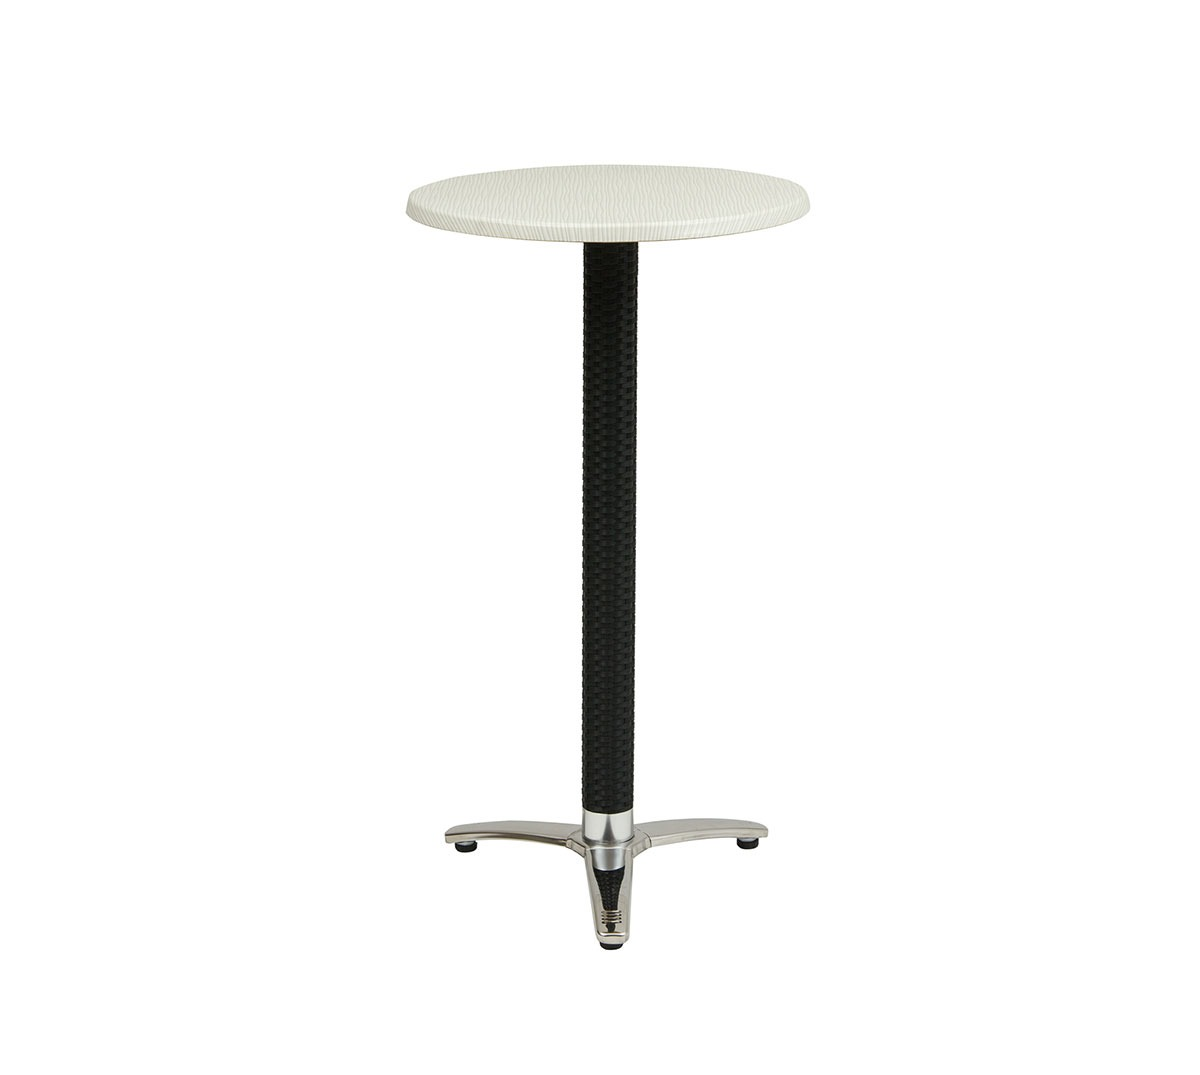 Mesa Turín 3p a 108 aluminio columna antracita tablero top mar blanco